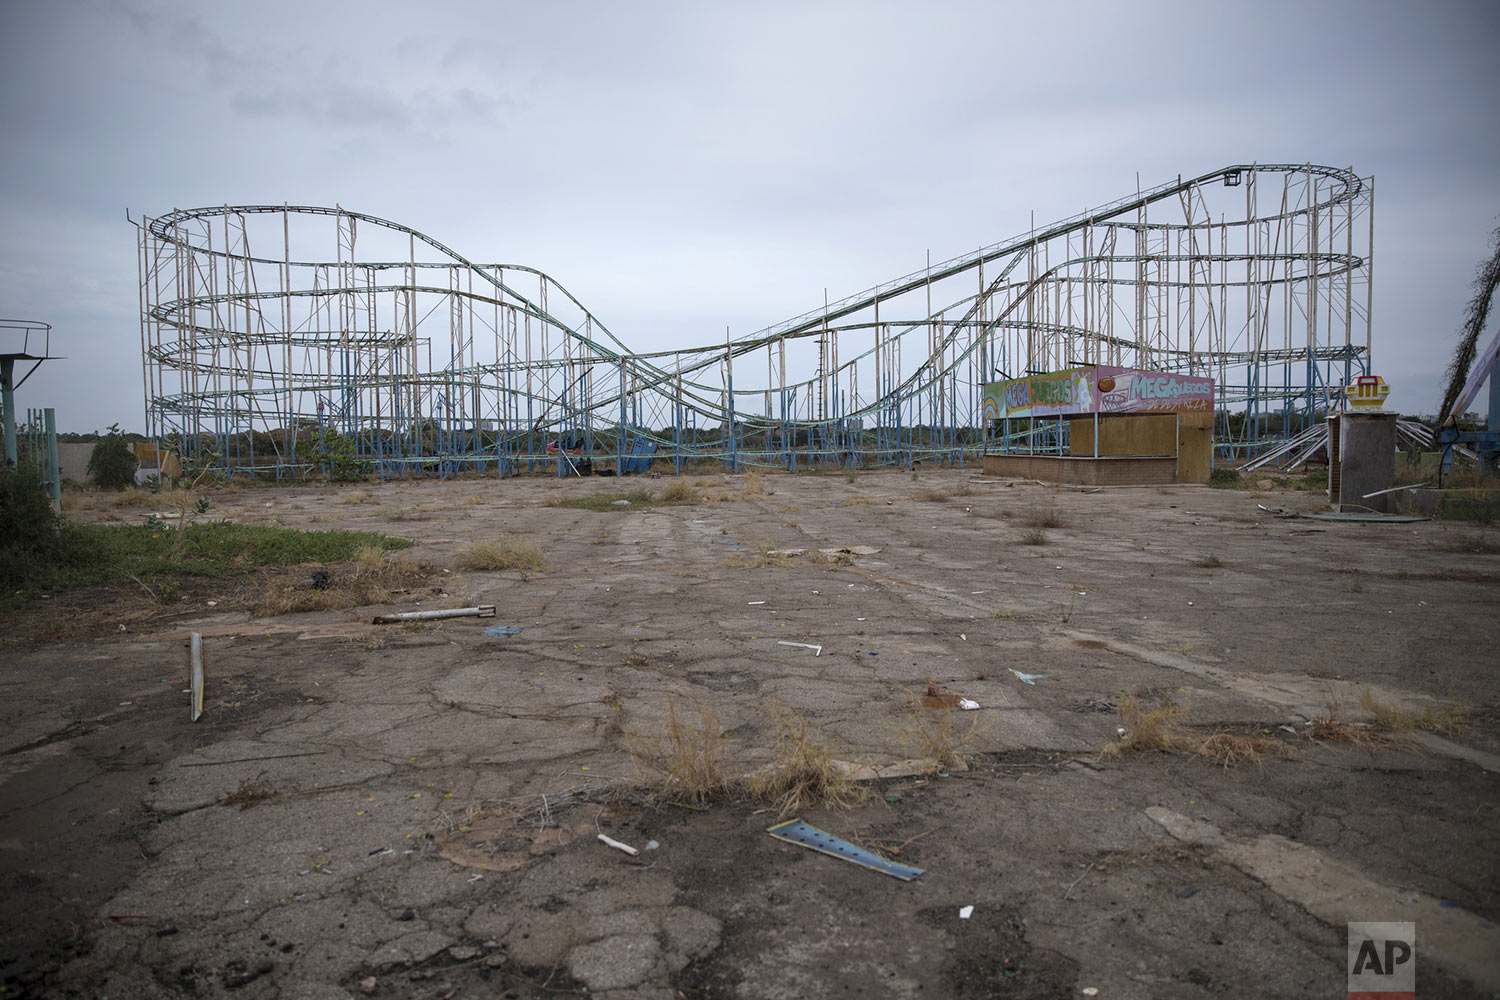 """A roller coaster stands tall in the abandoned amusement park coined """"Diversions Grano de Oro"""" in Maracaibo, Venezuela, May 23, 2019. Much of Venezuela is in a state of decay and abandonment, brought on by shortages of things that people need the most: cash, food, water, medicine, power, gasoline. (AP Photo/Rodrigo Abd)"""